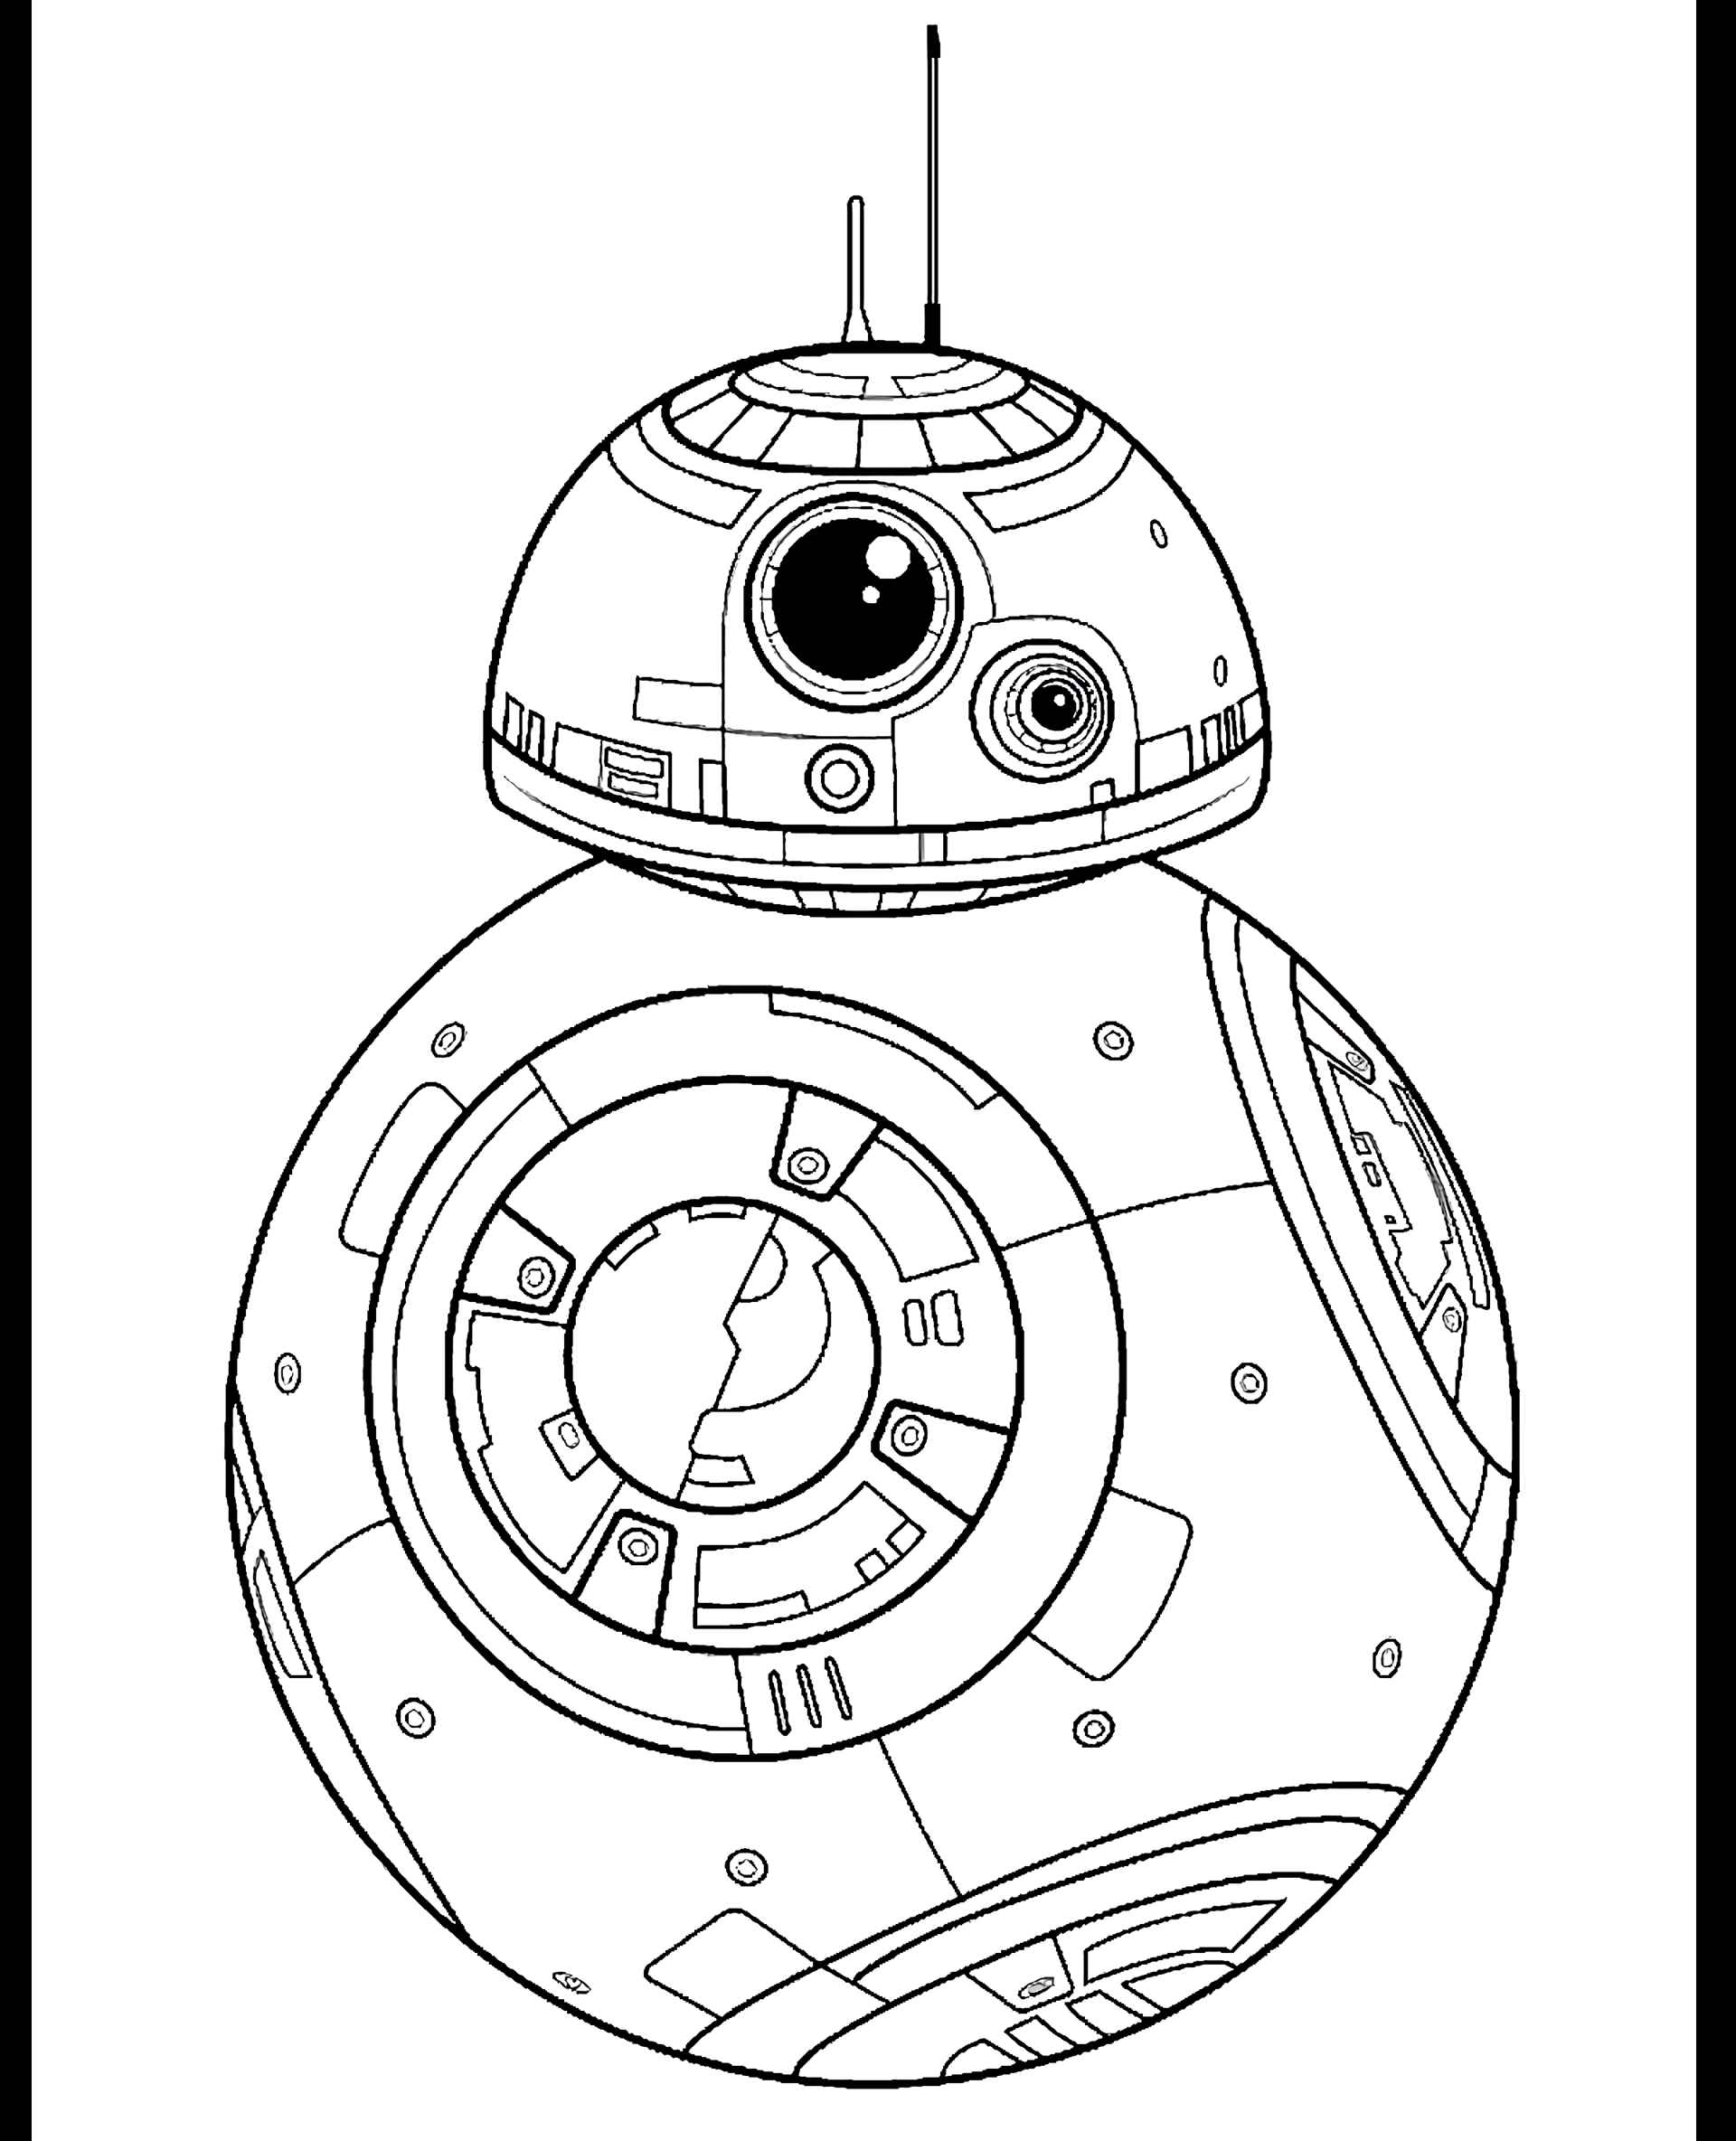 Bb-8 Droid From Star Wars Coloring Page